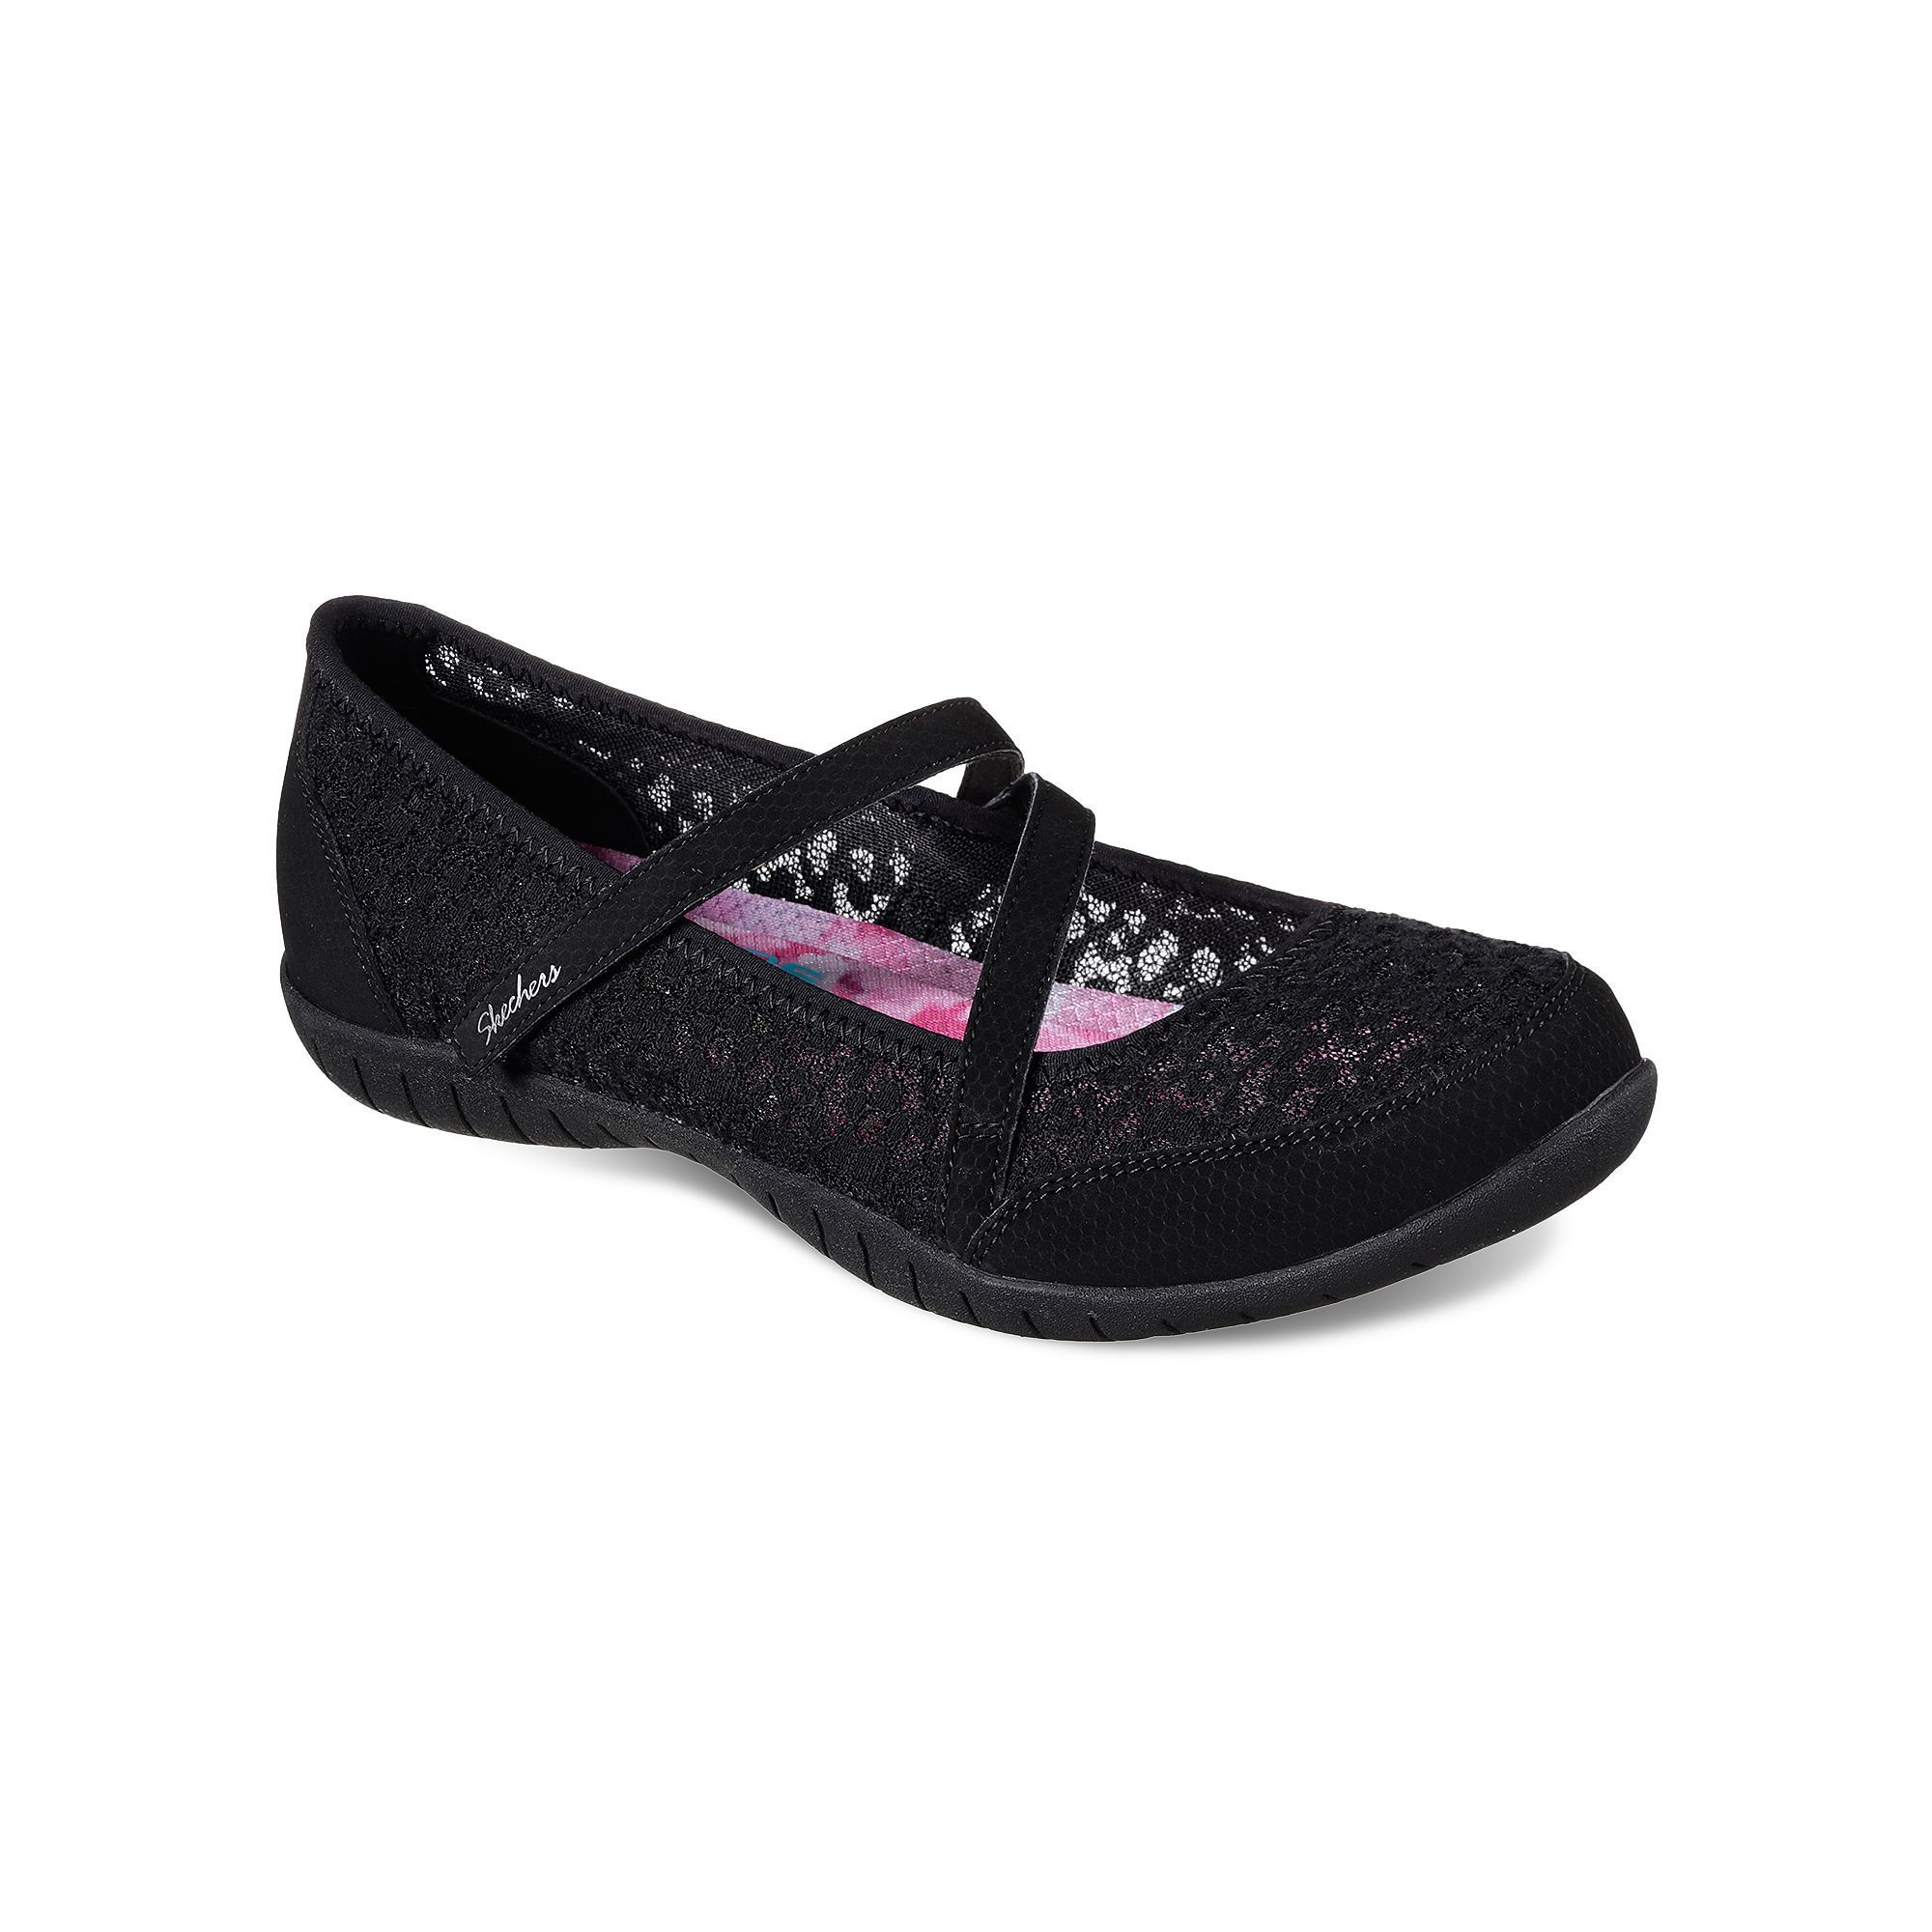 99609af0542e Skechers Atomic Dainty Lady Women s Mary Jane Shoes